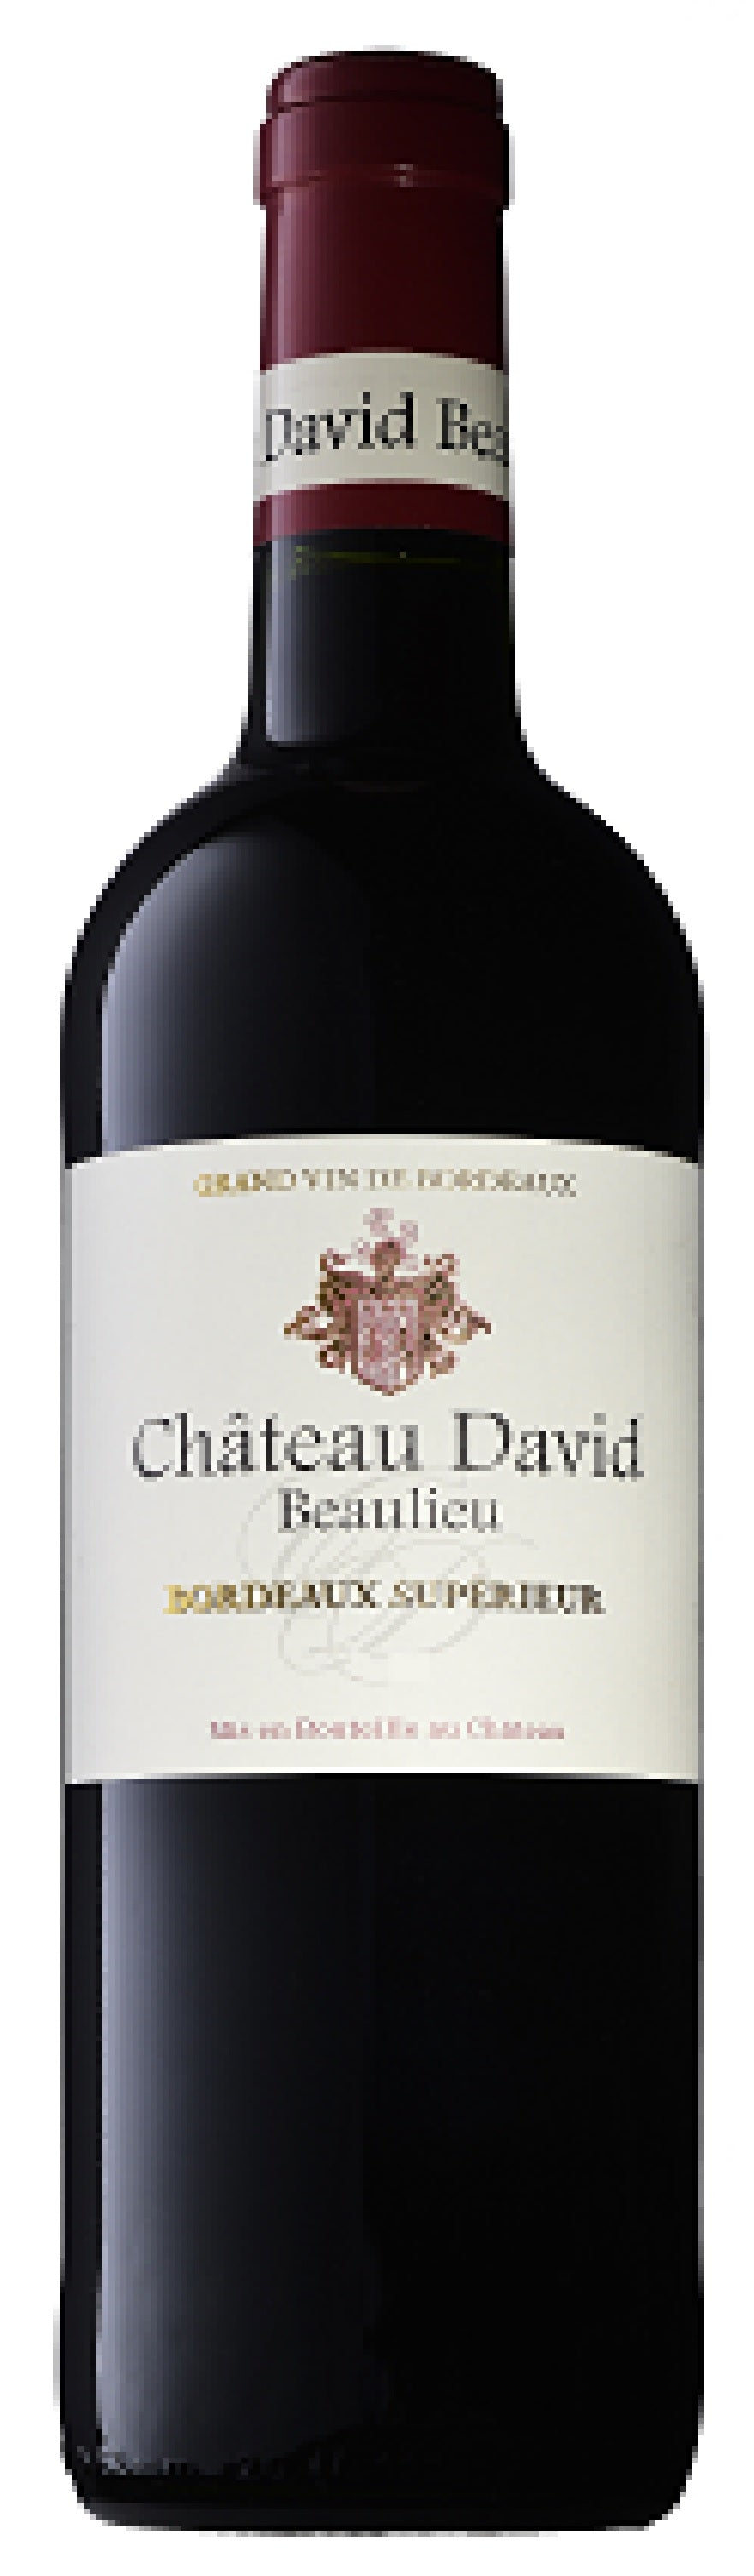 Chateau David Beaulieu Bordeaux Superieur 2016